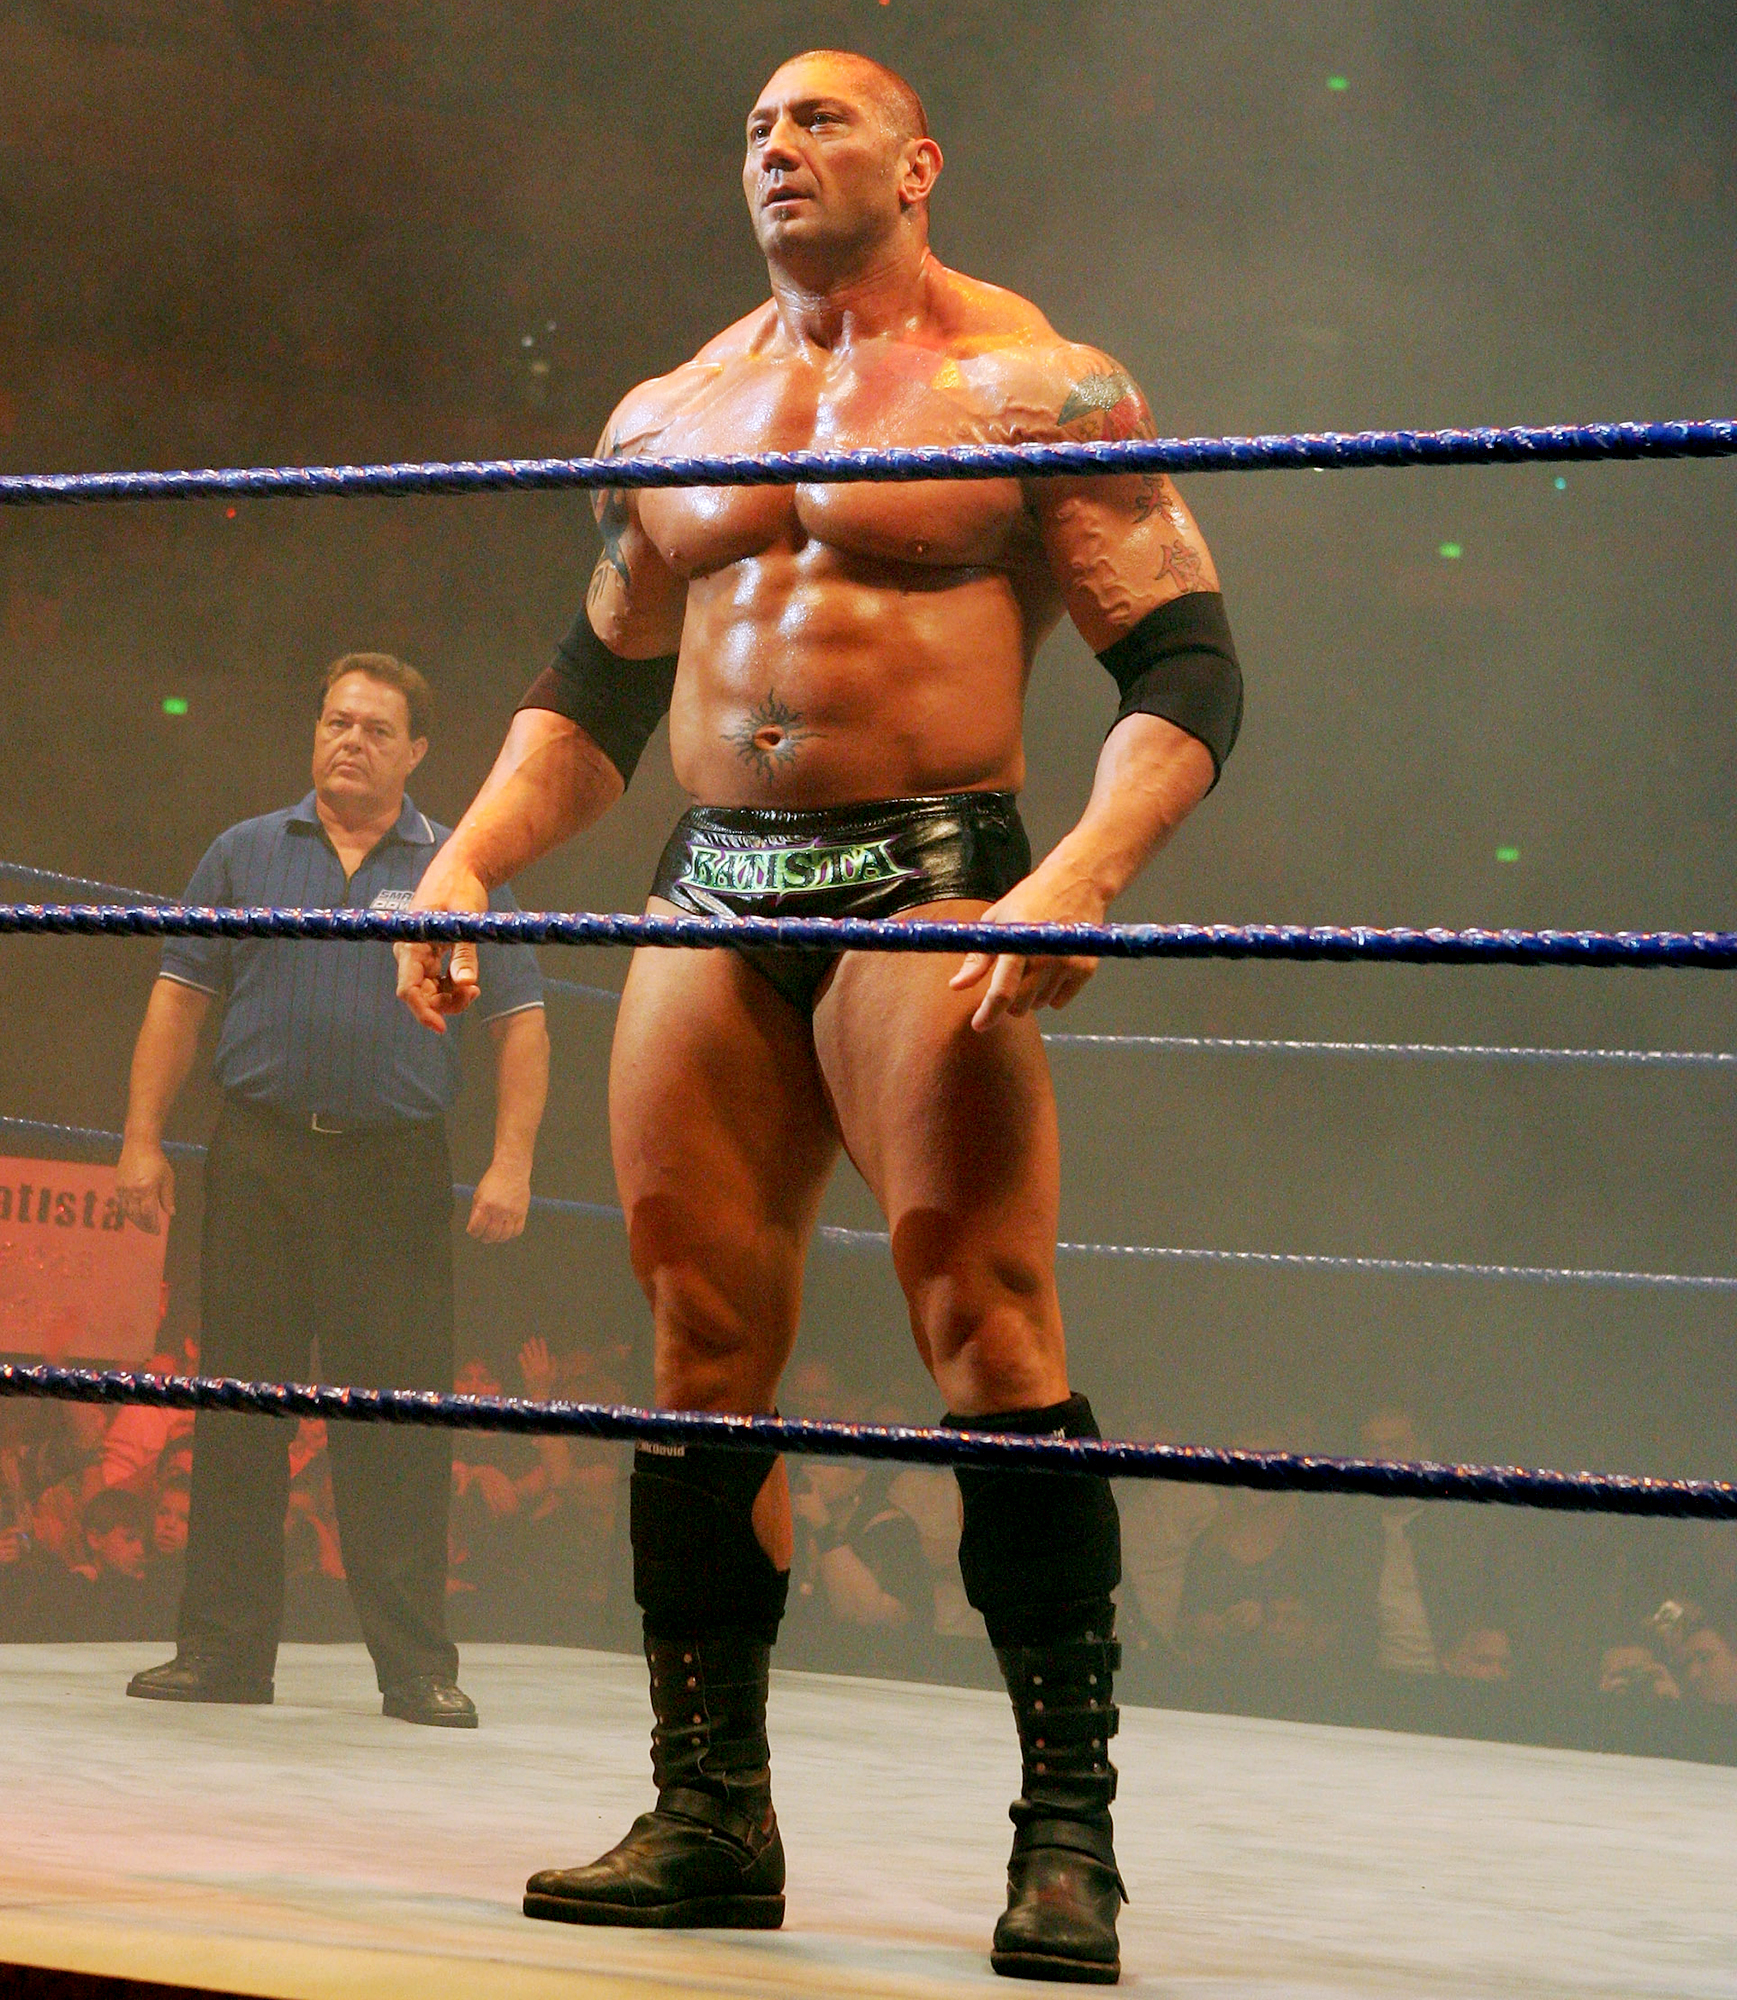 Dave-Bautista-Retires-from-Professional-Wrestling